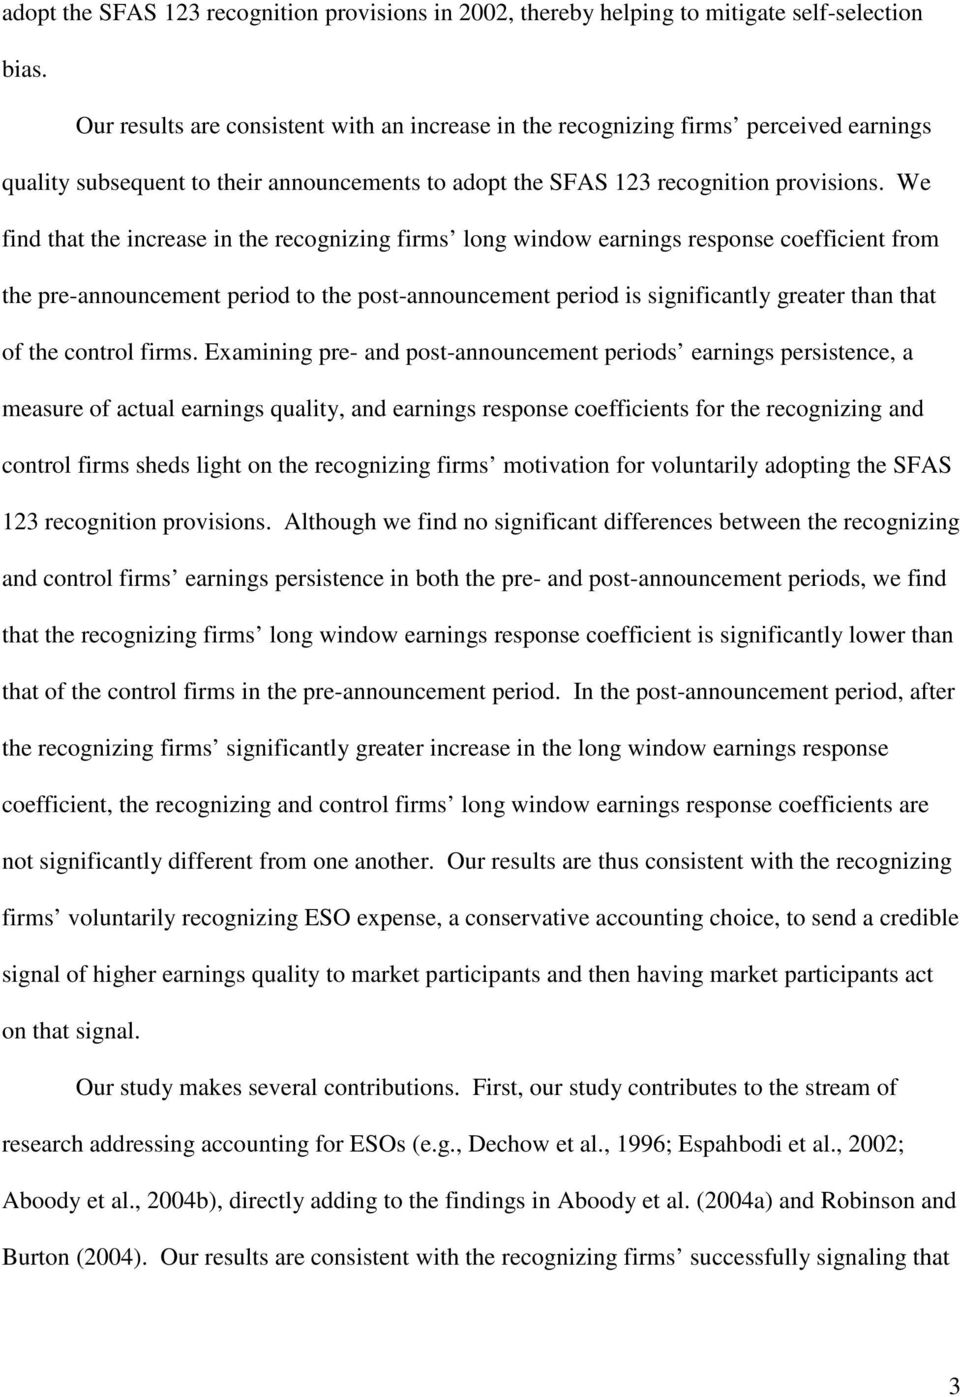 We find that the increase in the recognizing firms long window earnings response coefficient from the pre-announcement period to the post-announcement period is significantly greater than that of the